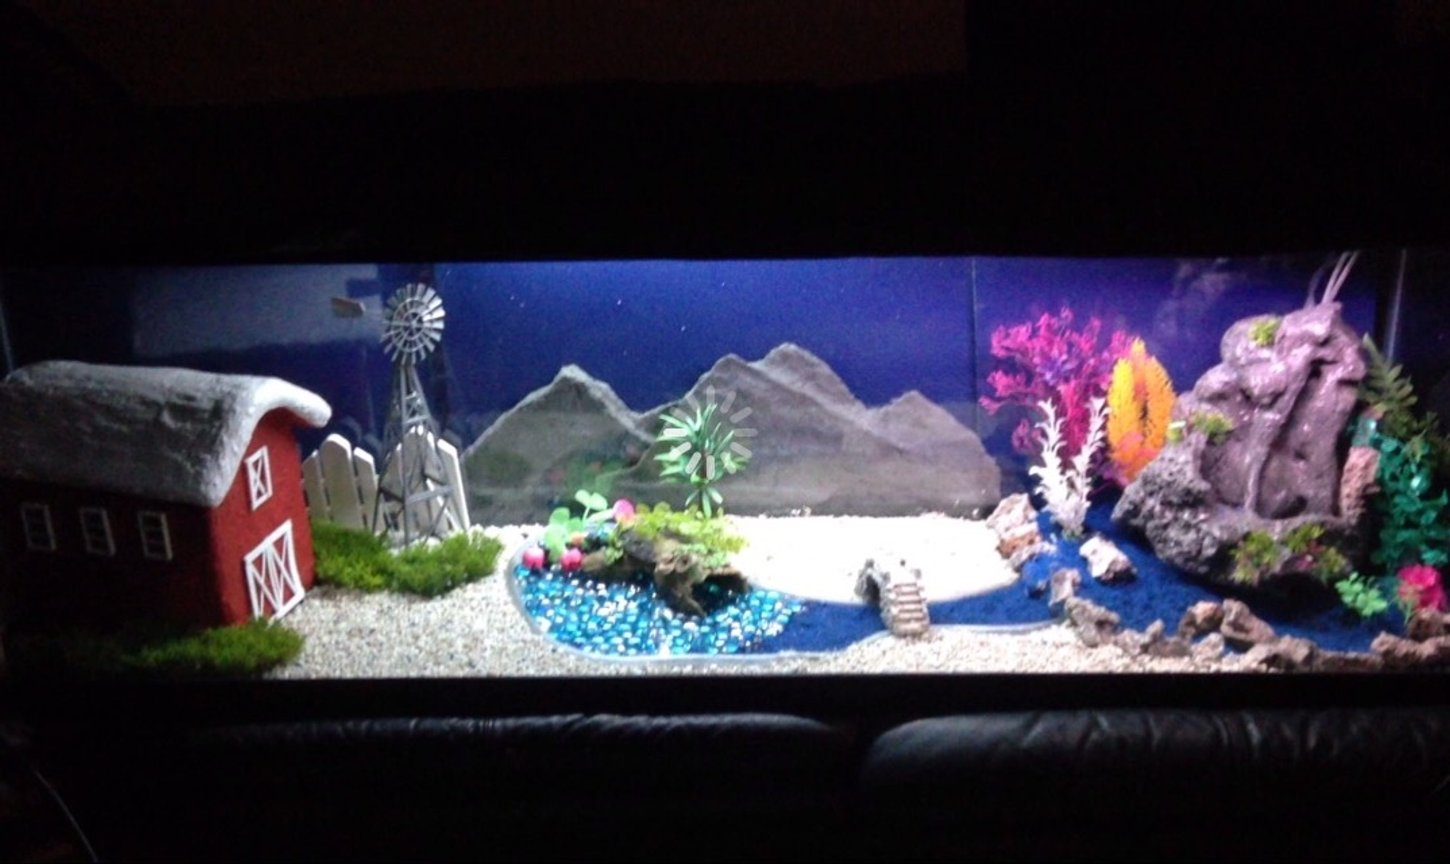 fish tank picture - My Country Farm Theme fish tank. Huge waterfall that flows sand out from it, stars that light up at night in the background, and a windmill that spins continuously. Checkout my other themes